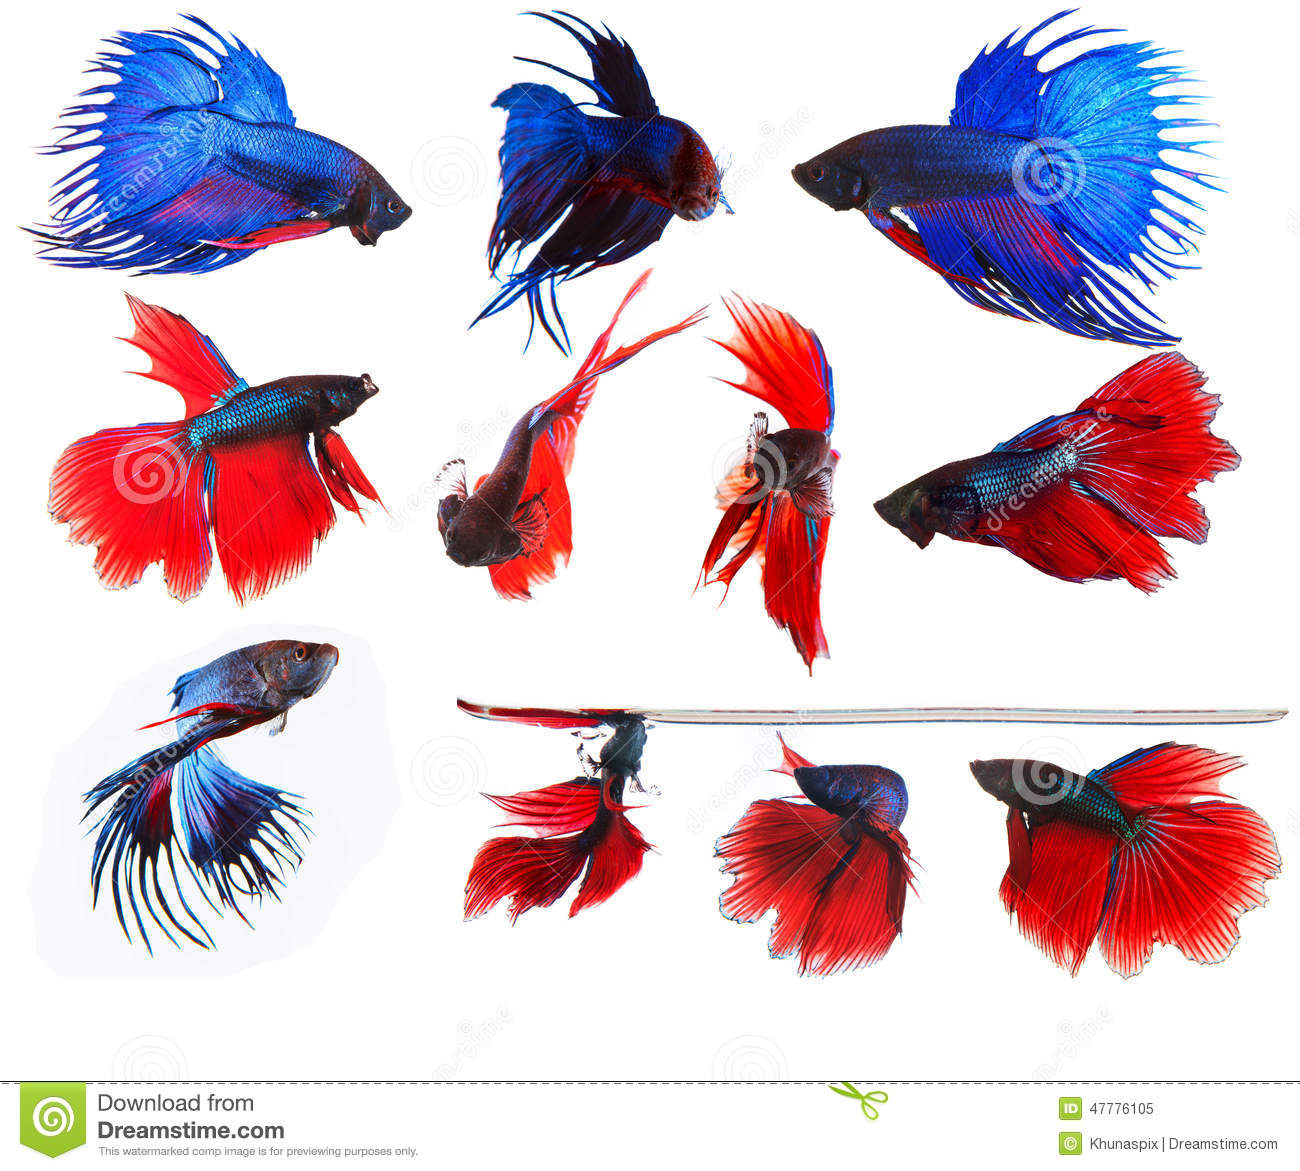 siamese fighting fish how to tell gender